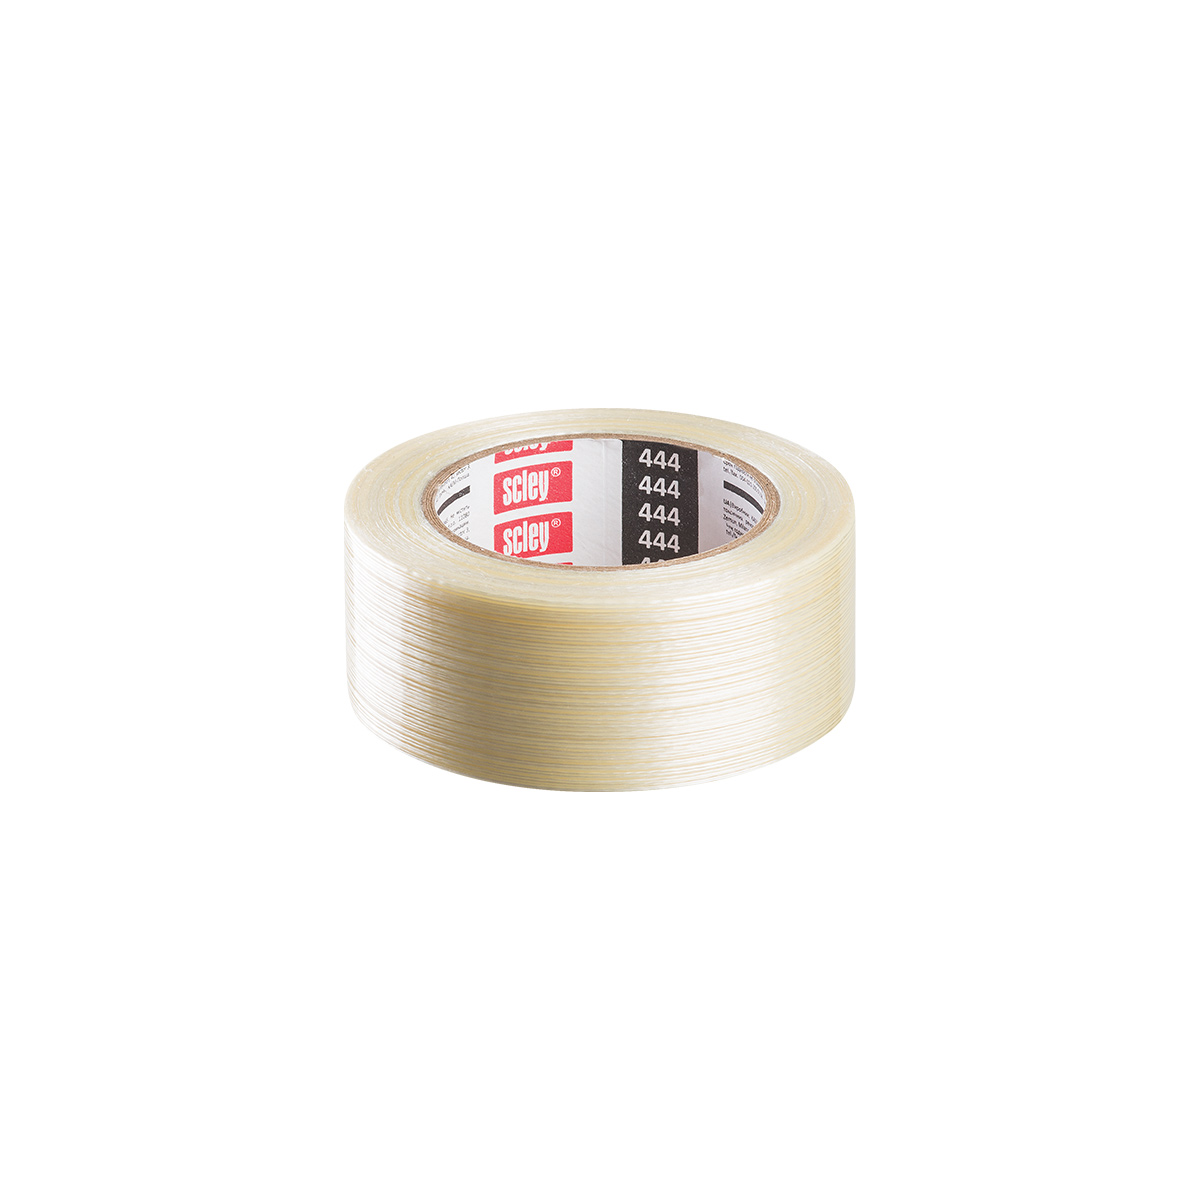 S.444 ULTRA STRONG PACKING TAPE